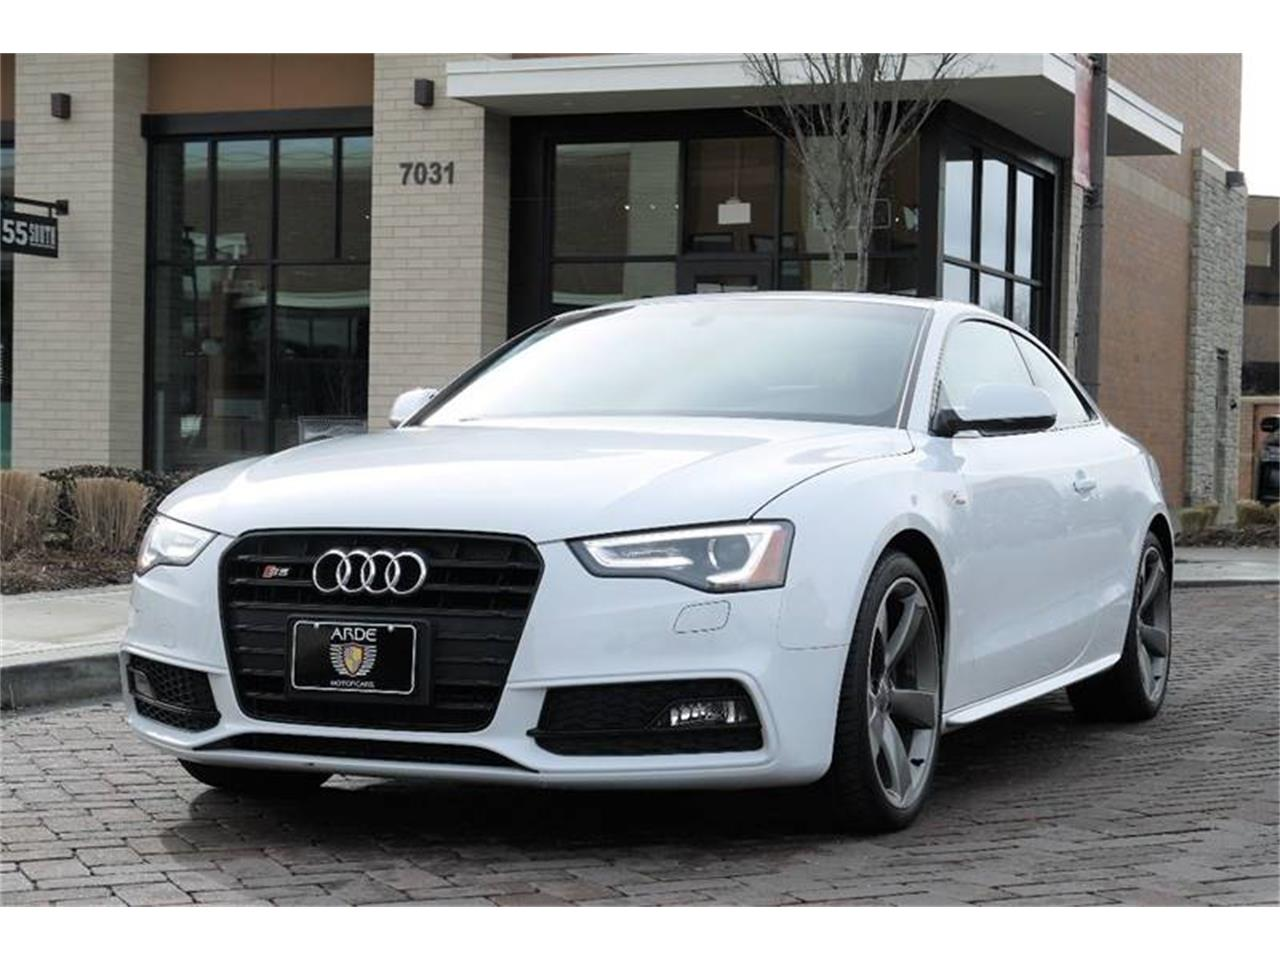 Large Picture of '15 Audi S5 - $45,800.00 - MOD5